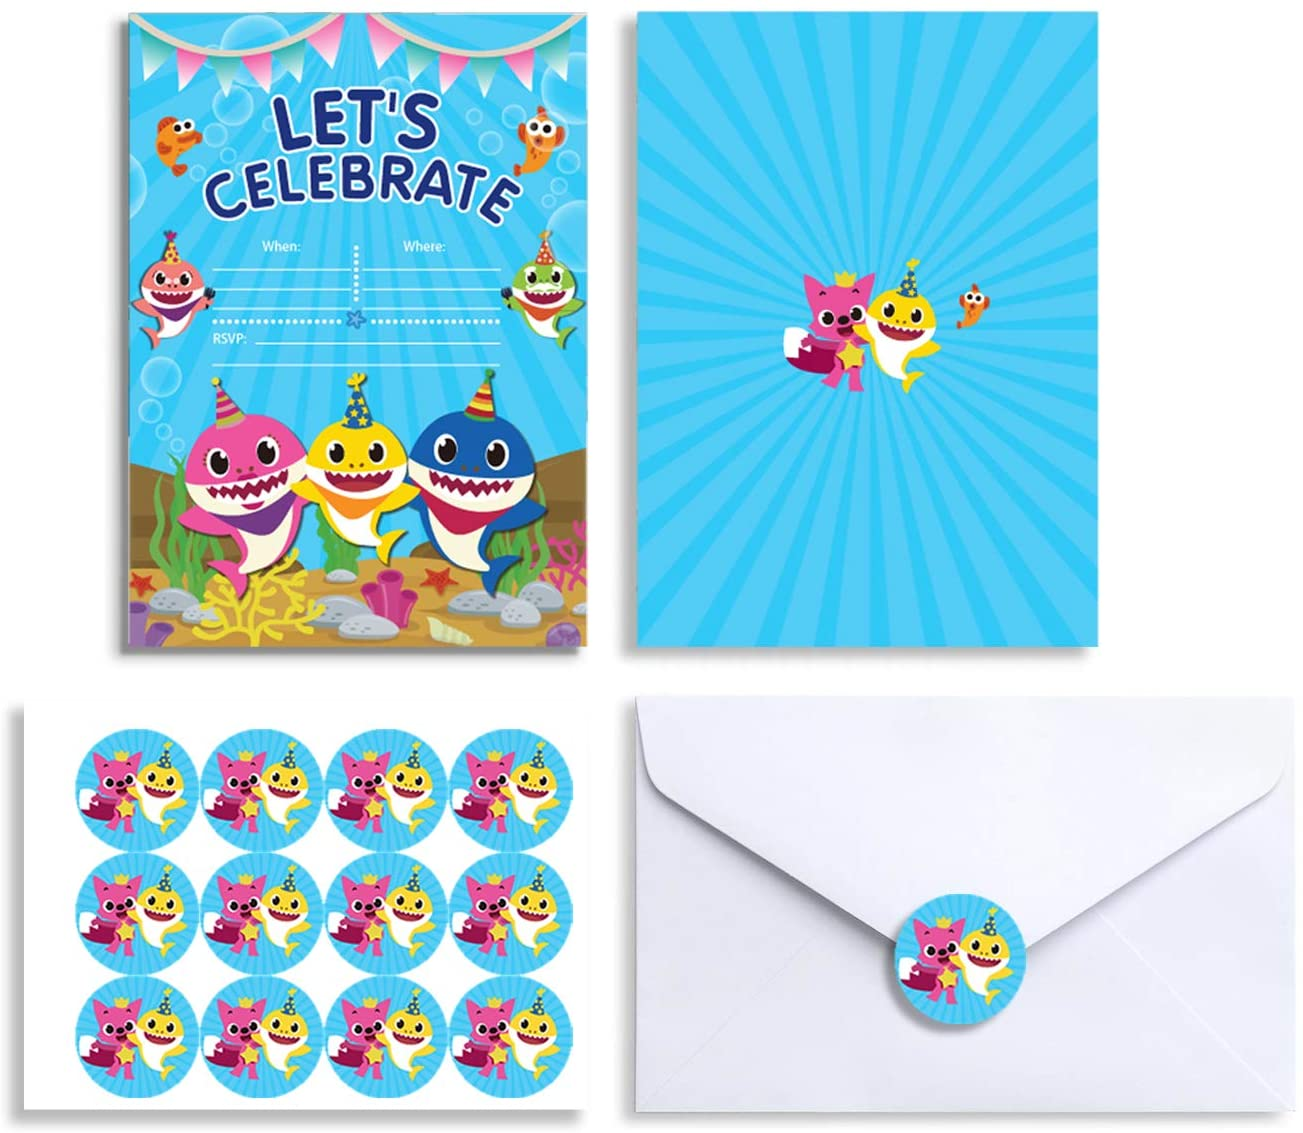 12 Shark Birthday Invitations with Stickers Envelopes Party Invitation Invites Cards for 1st Girls or Boys